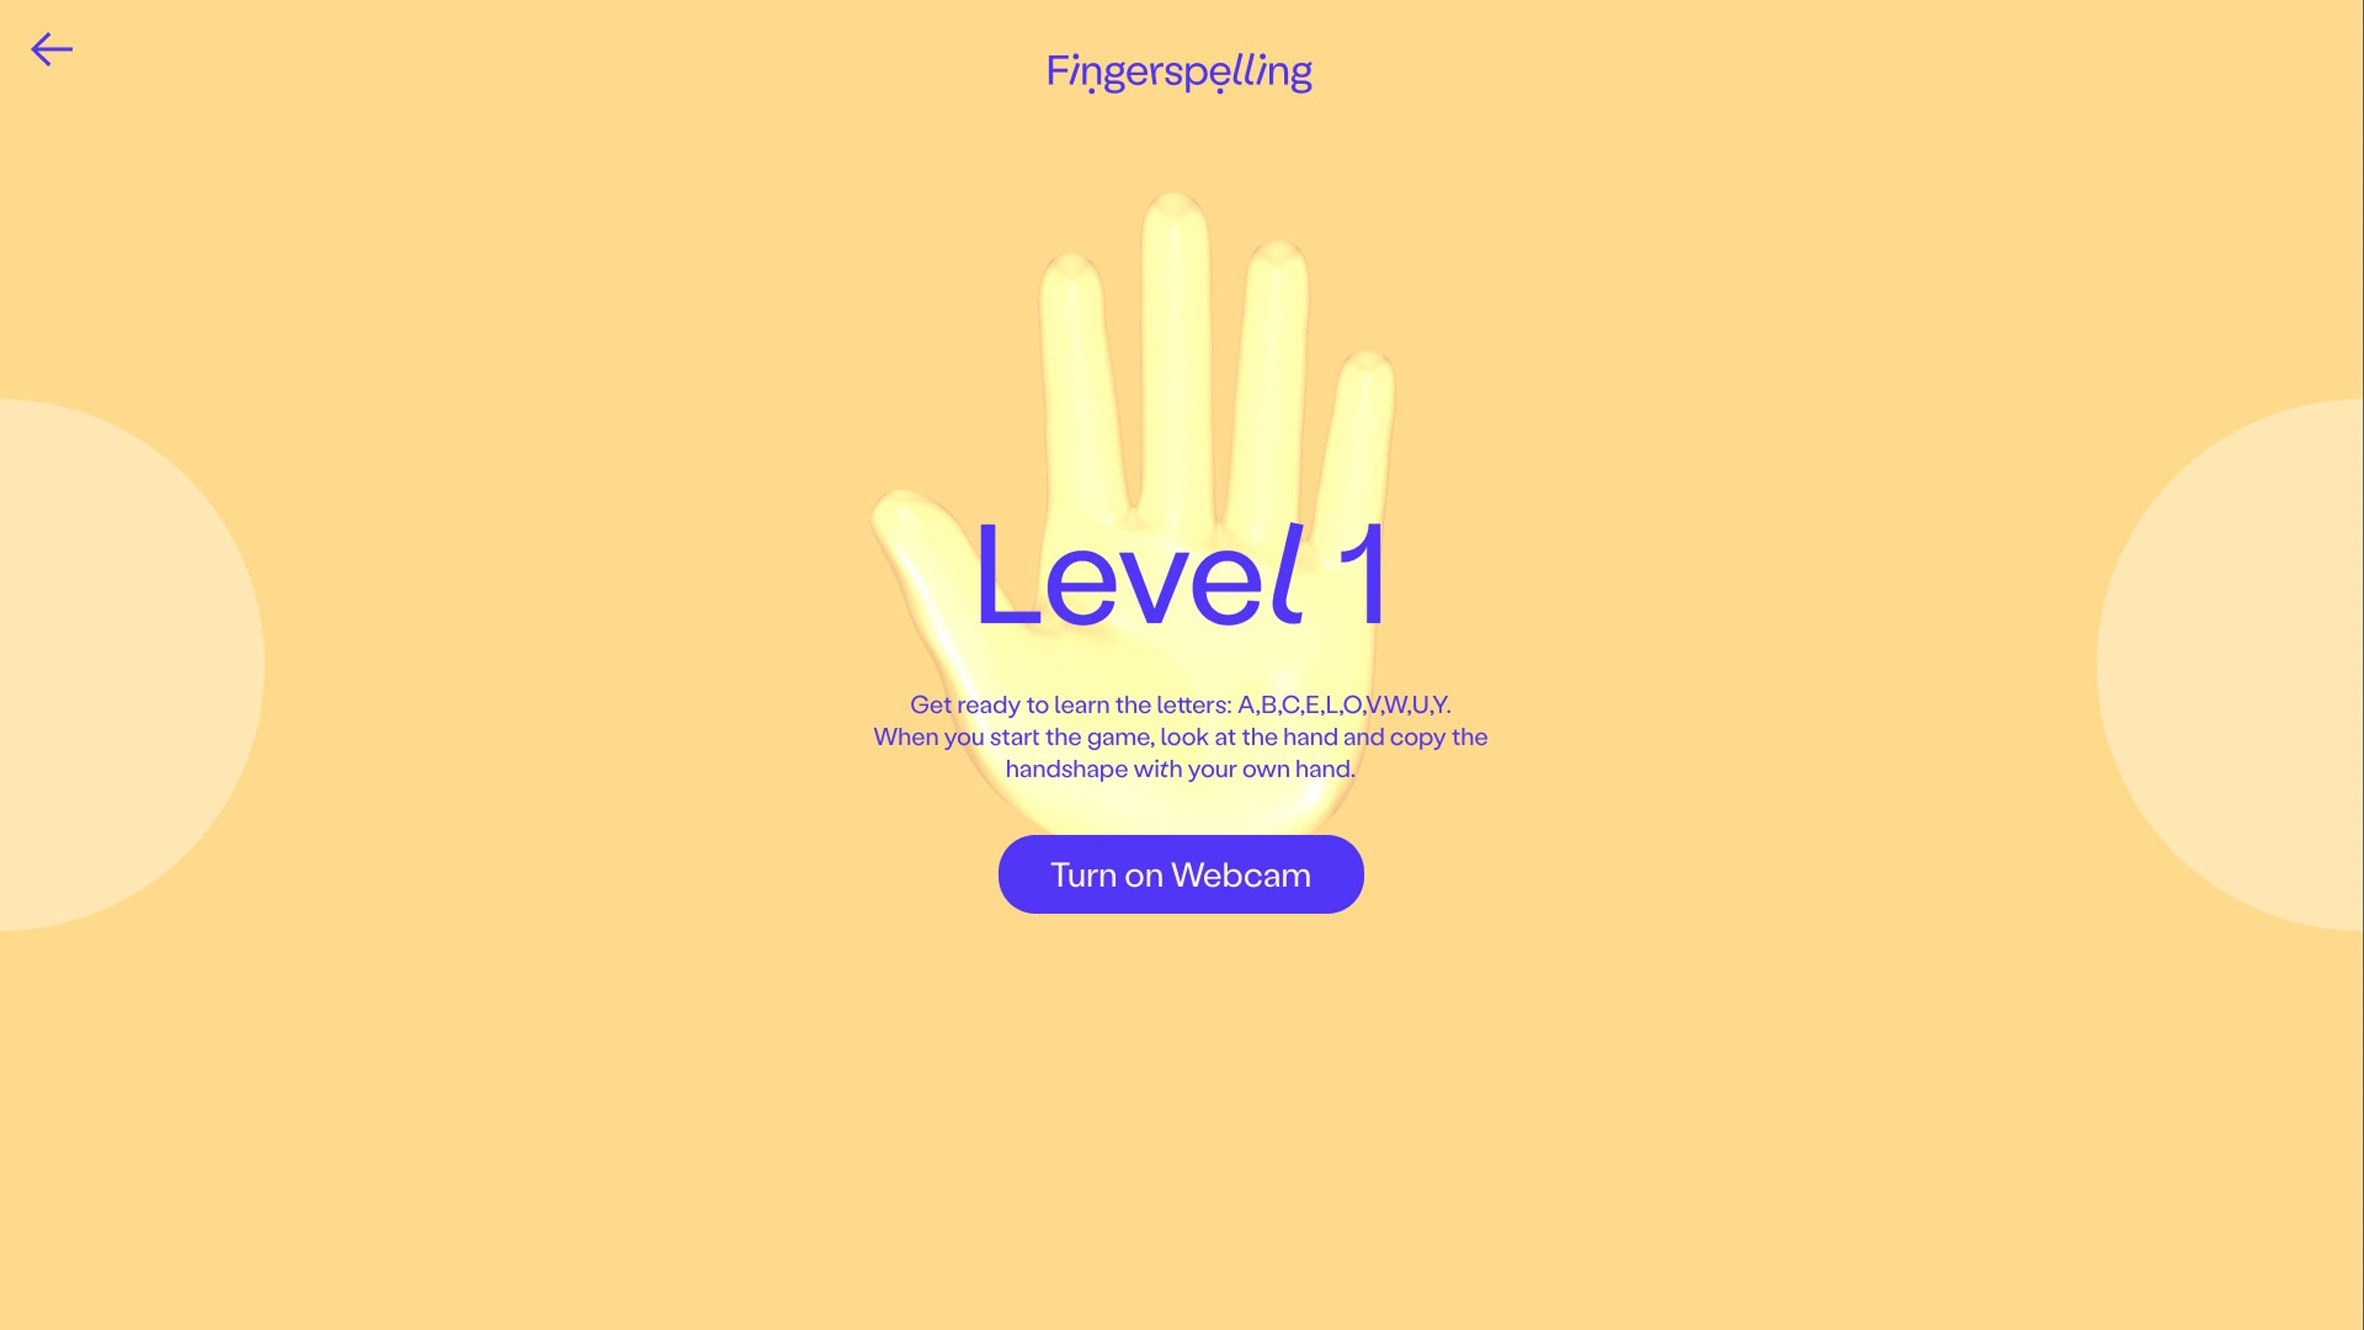 Fingerspelling.xyz level-one home screen giving instructions to look at the hand on screen and copy its hand shape